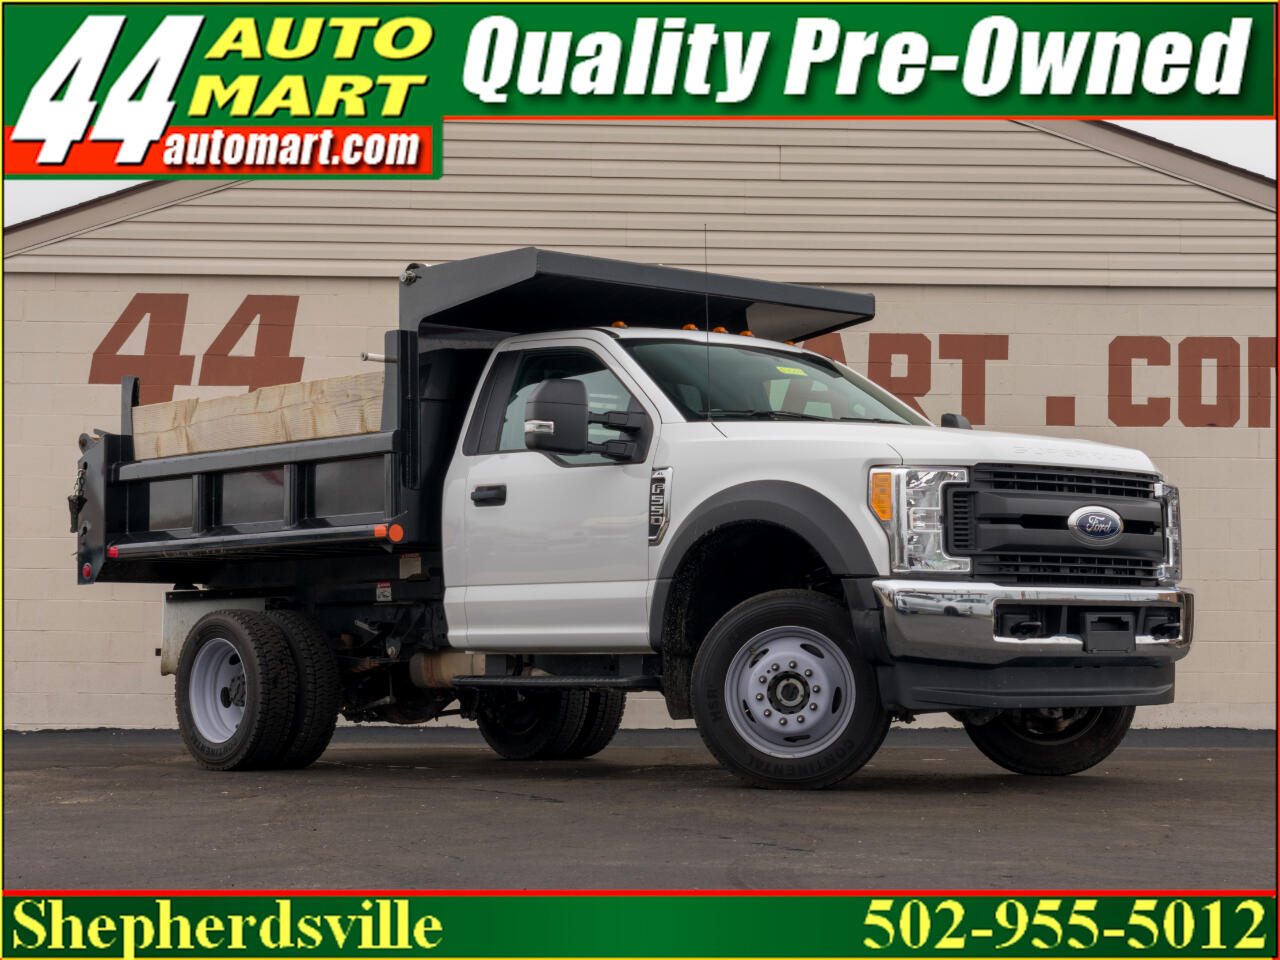 2017 Ford F-550 Regular Cab DRW 4WD